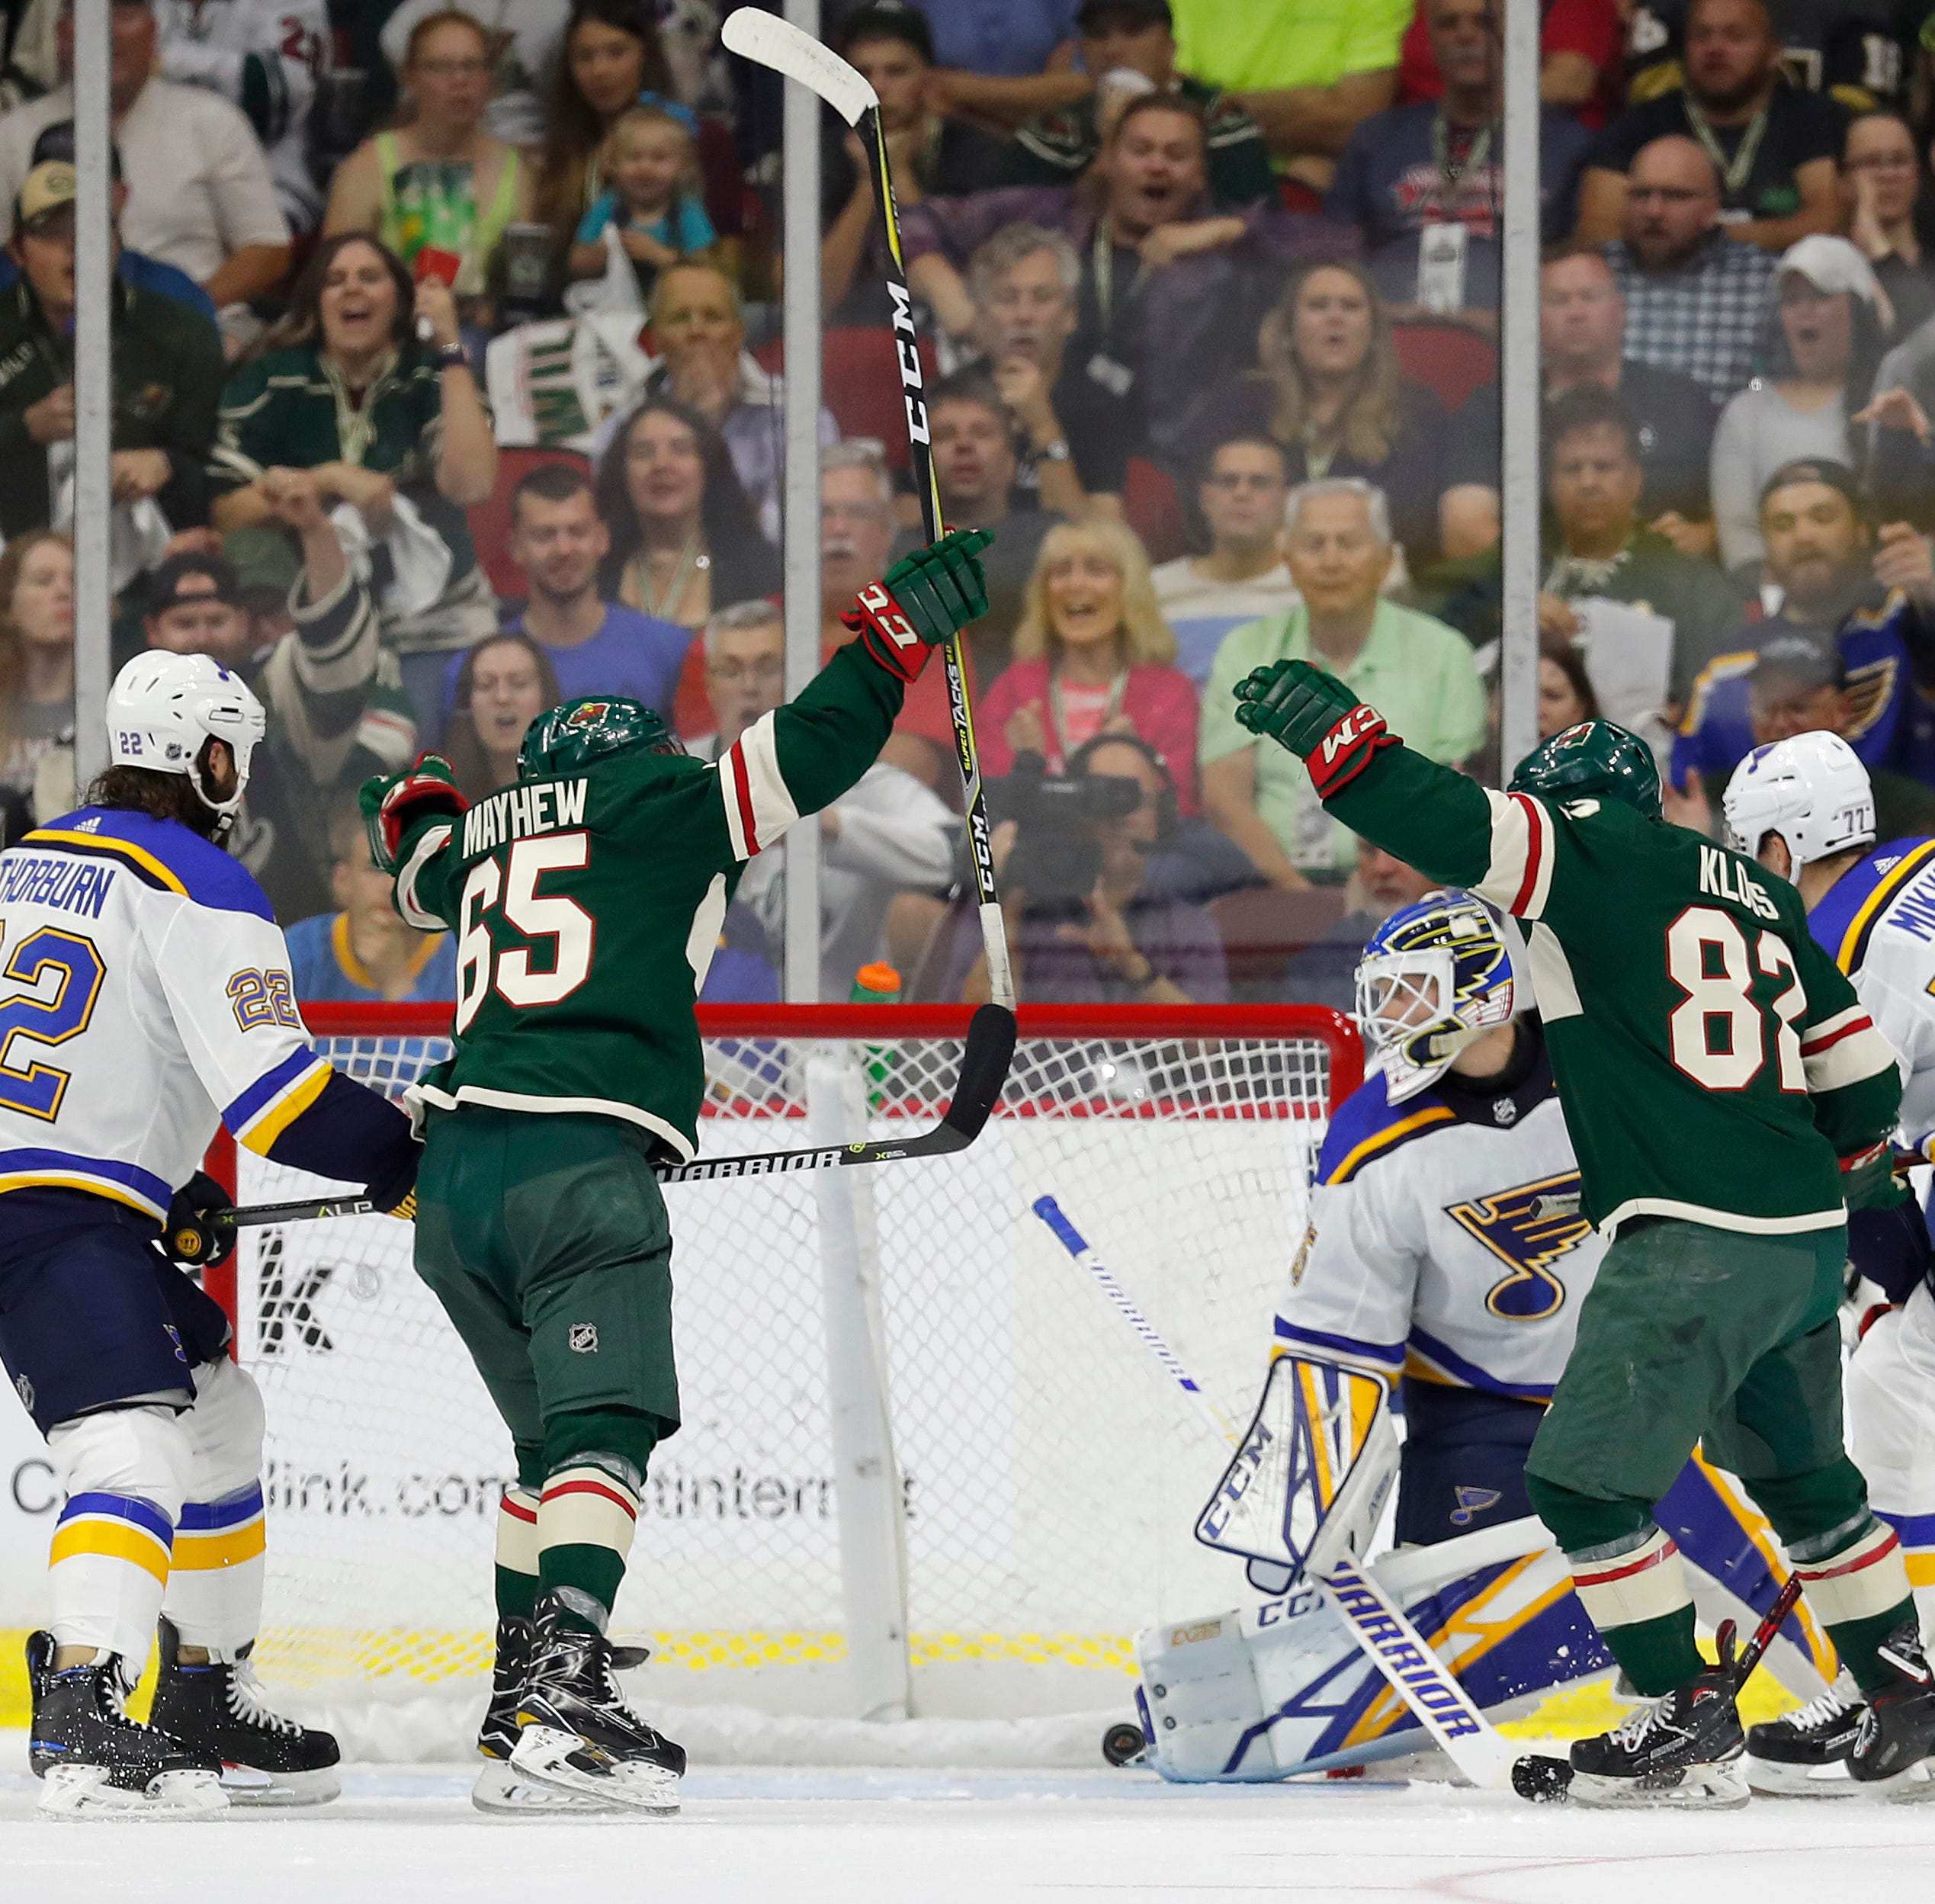 St. Louis Blues stun Minnesota Wild late in NHL preseason game at Wells Fargo Arena